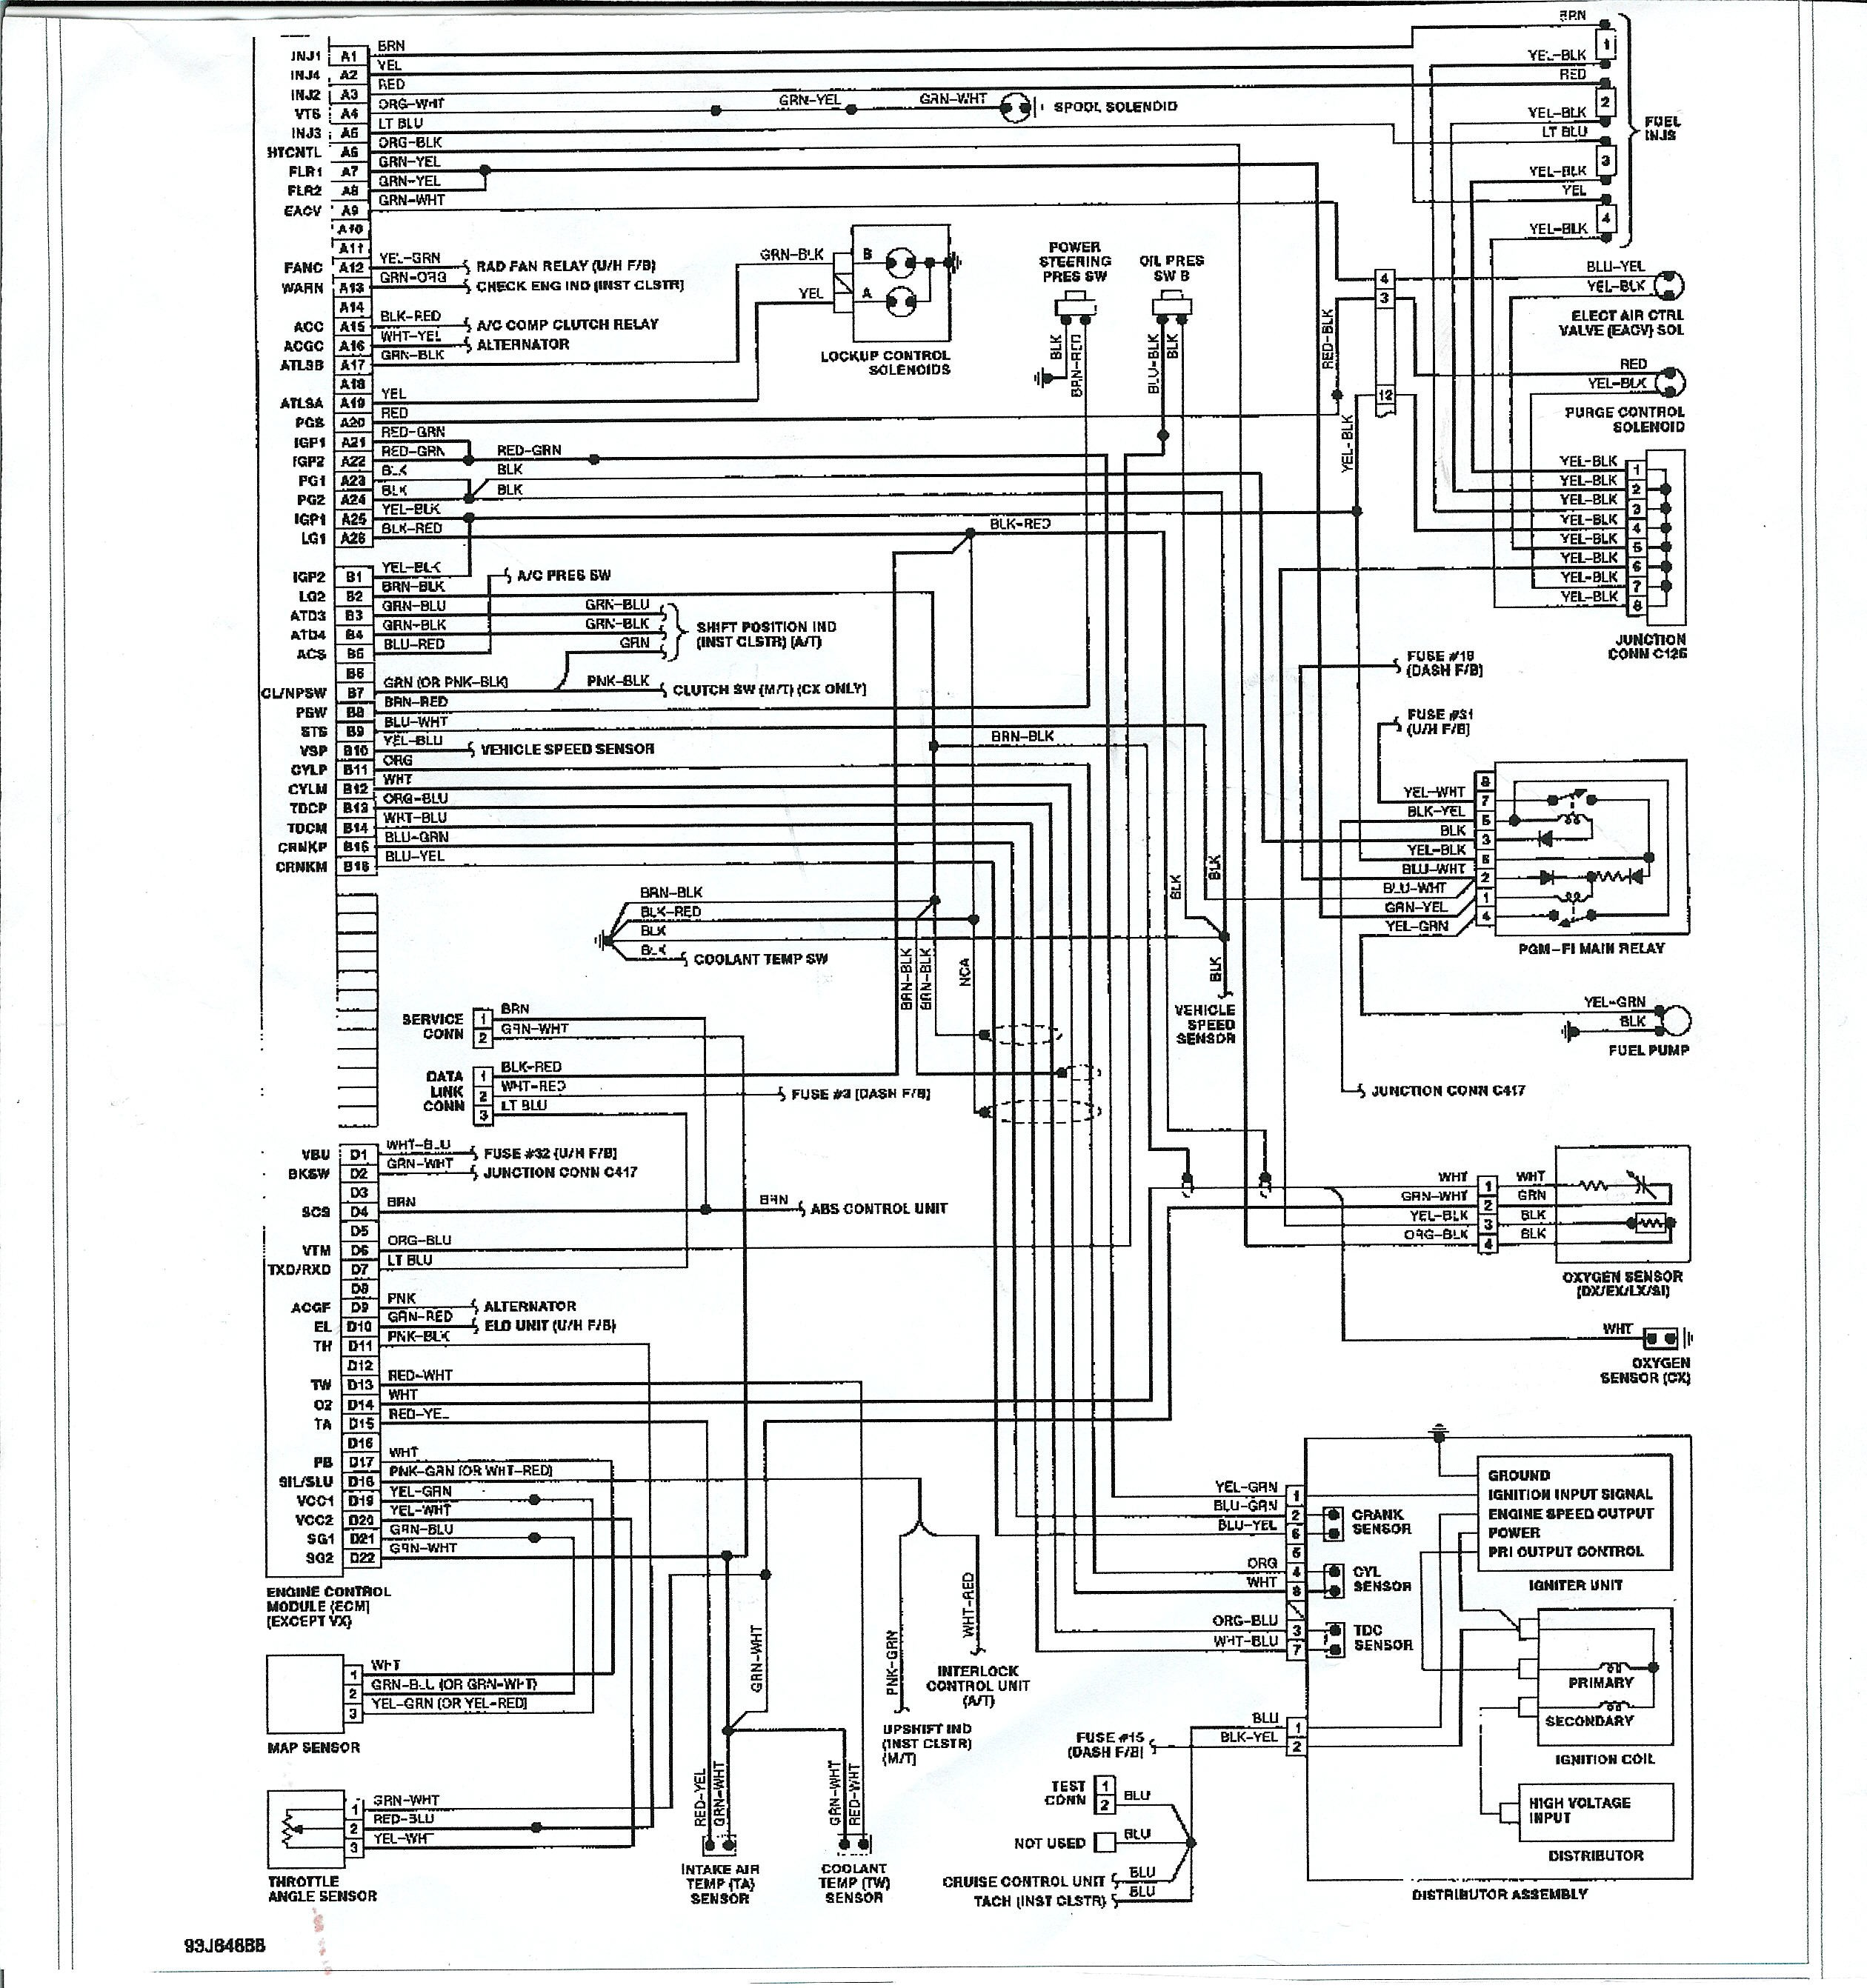 Honda Accord 1994 Engine Diagram Vw Transporter Wiring Diagram 95 Honda Civic Transmission Diagram Of Honda Accord 1994 Engine Diagram